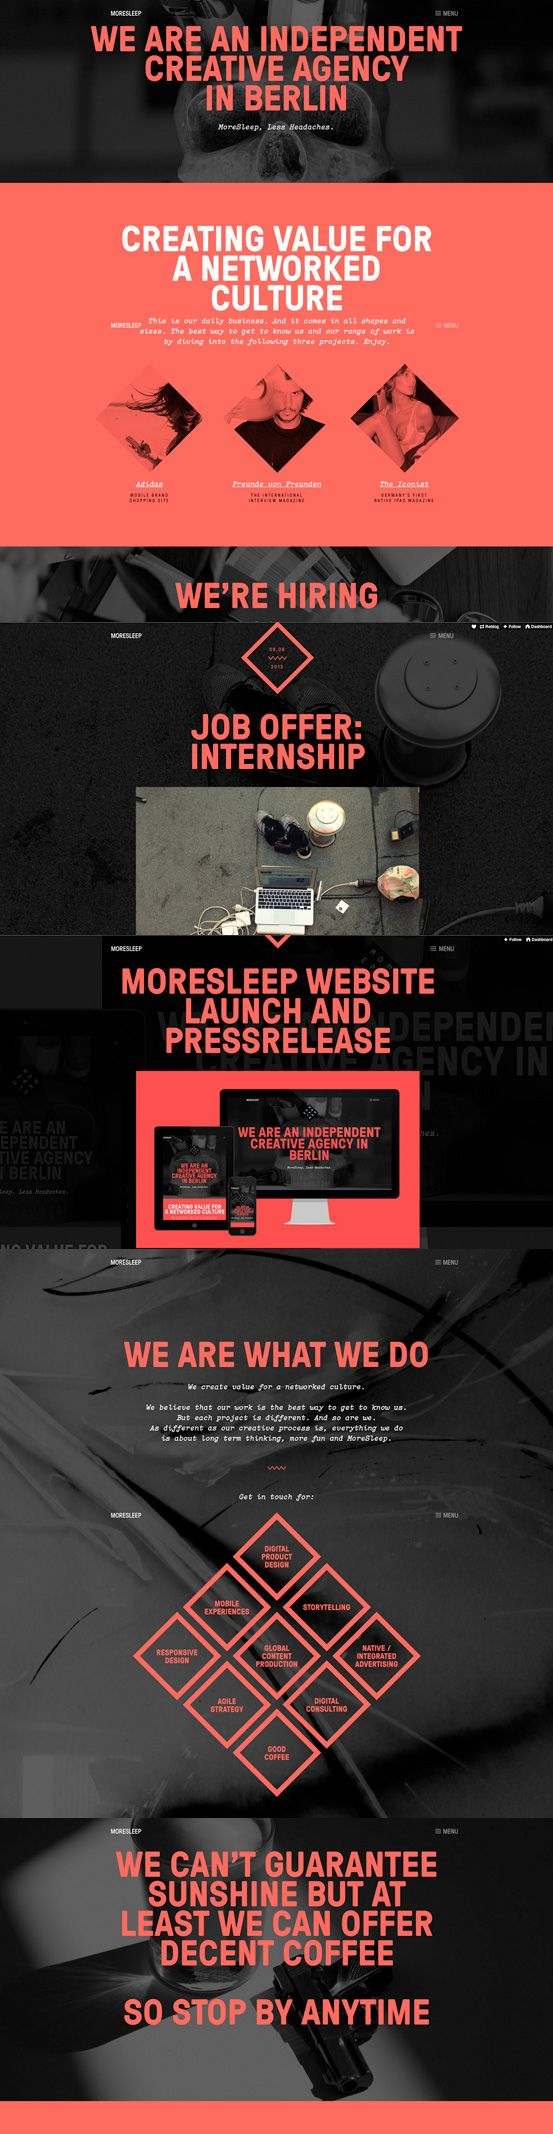 MoreSleep #webdesign #inspiration #UI #Typography #Responsive Design #Design #Portfolio #Parallax #Scroll #Black #White #Red